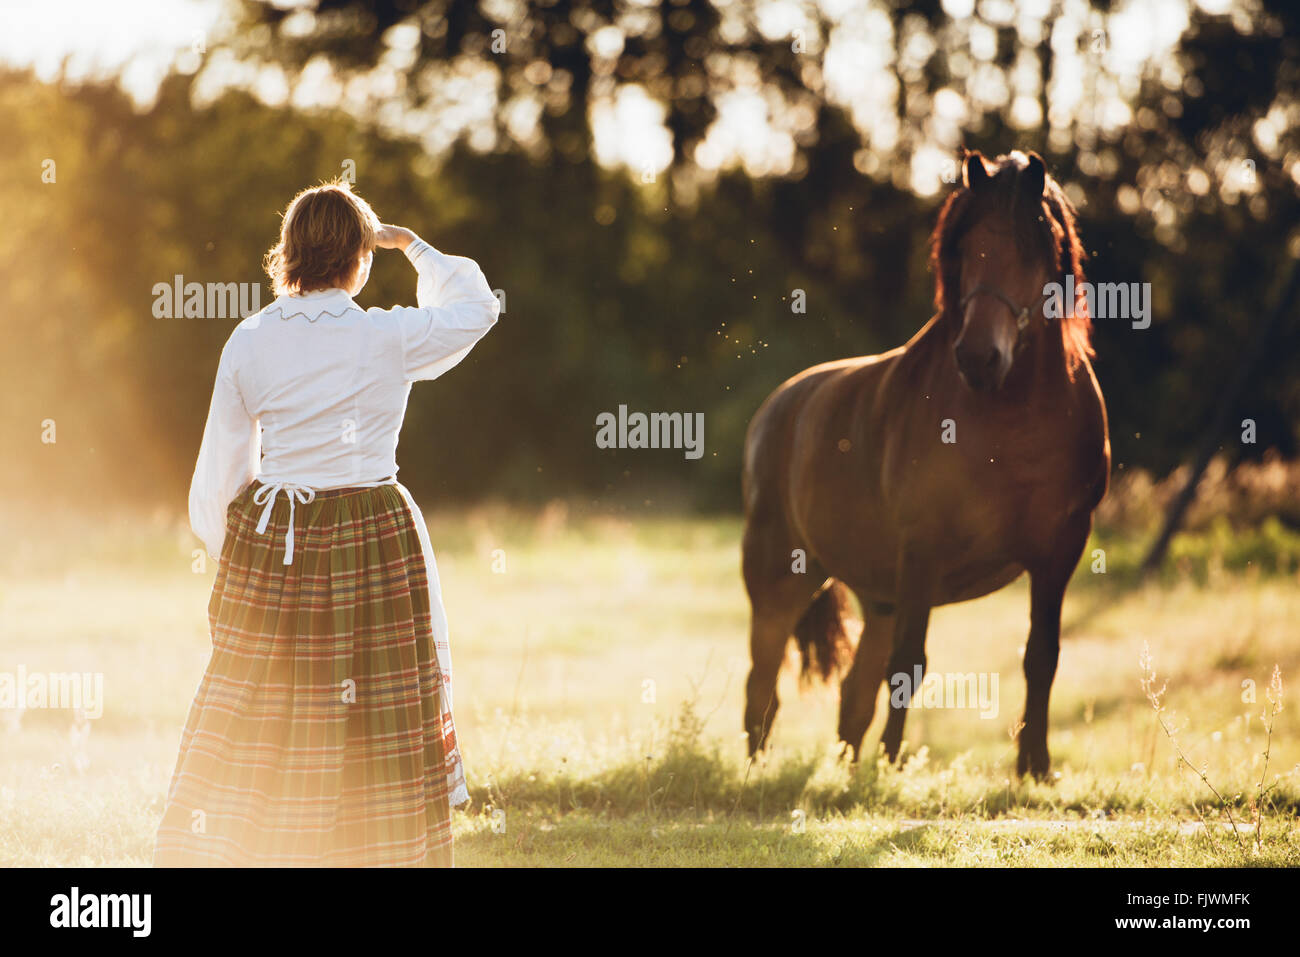 Rear View Of Woman And Horse Standing On Field - Stock Image